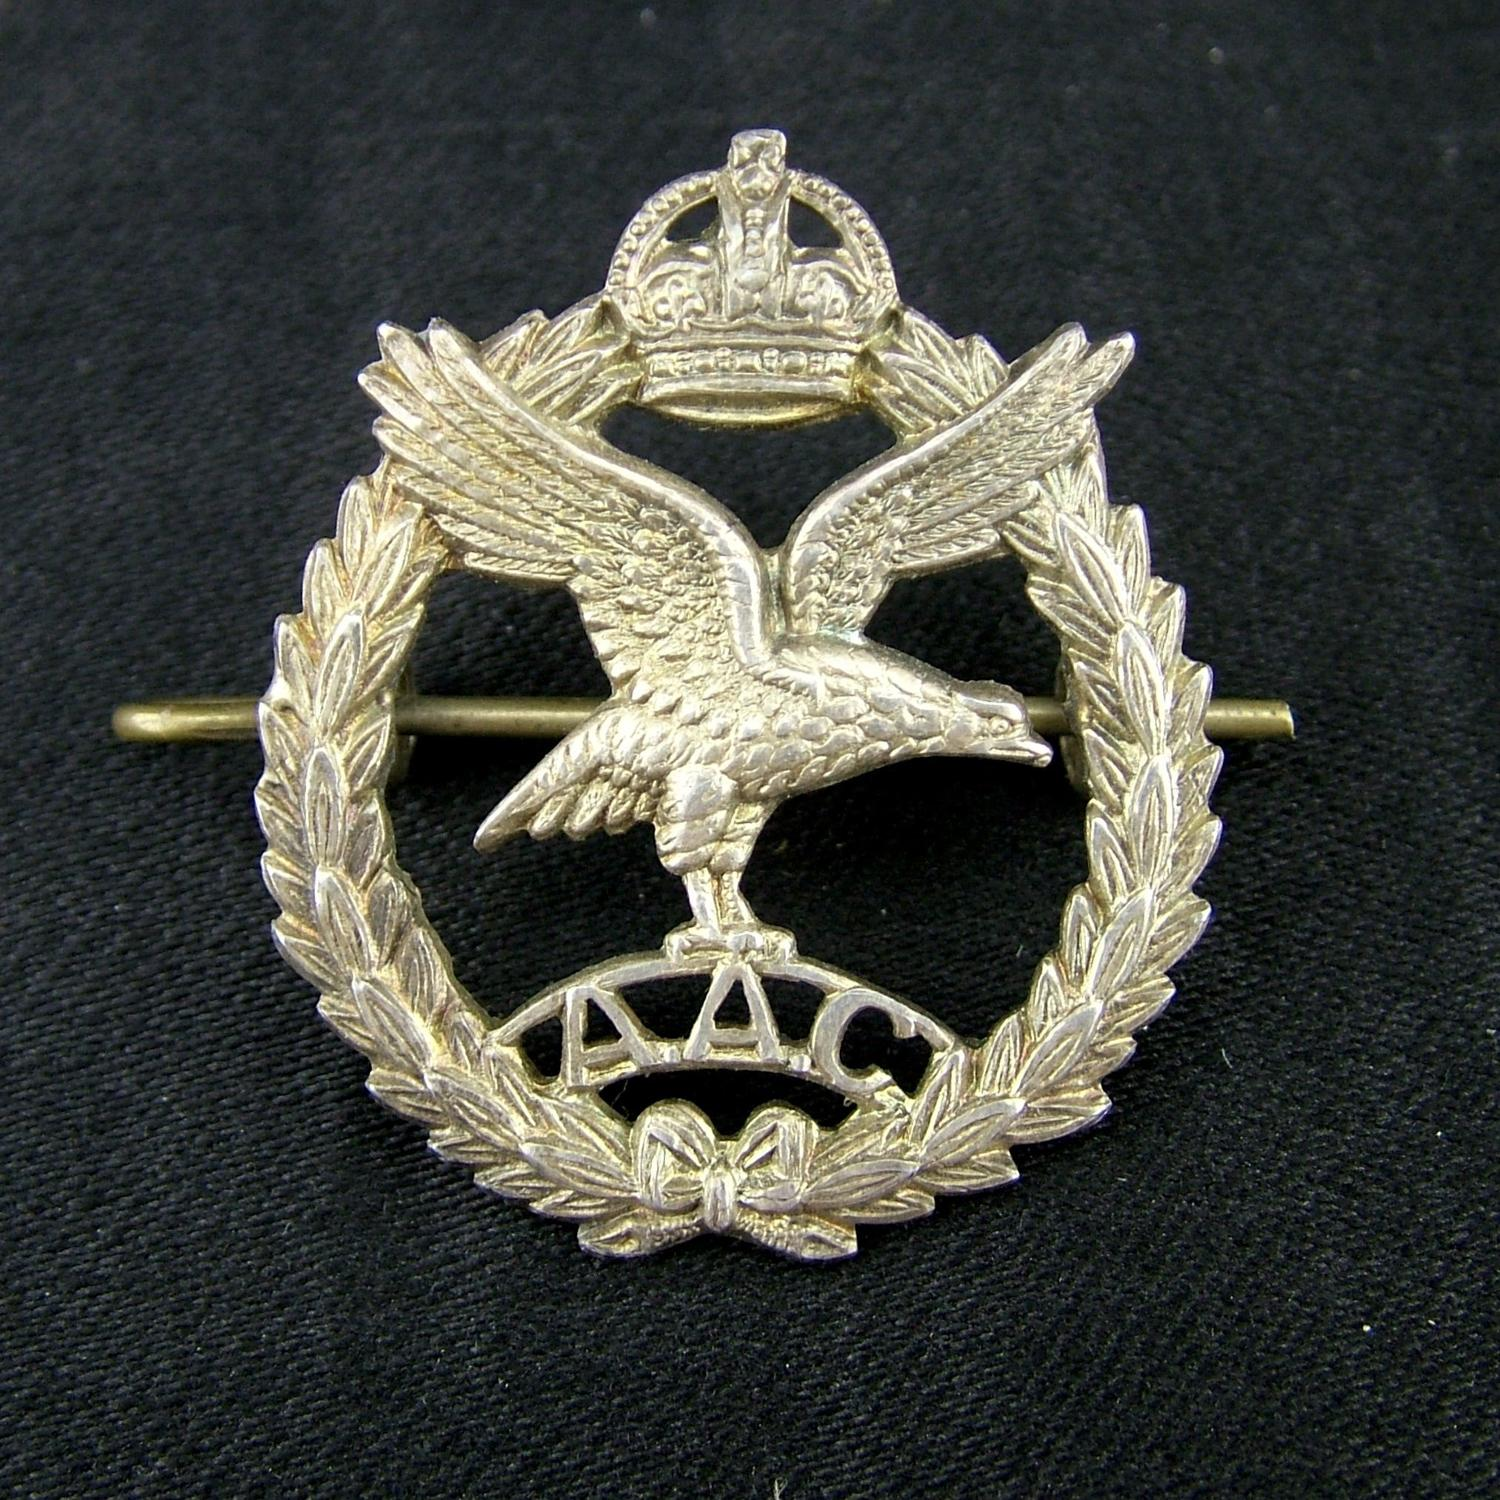 British Army Air Corps officer's badge, history